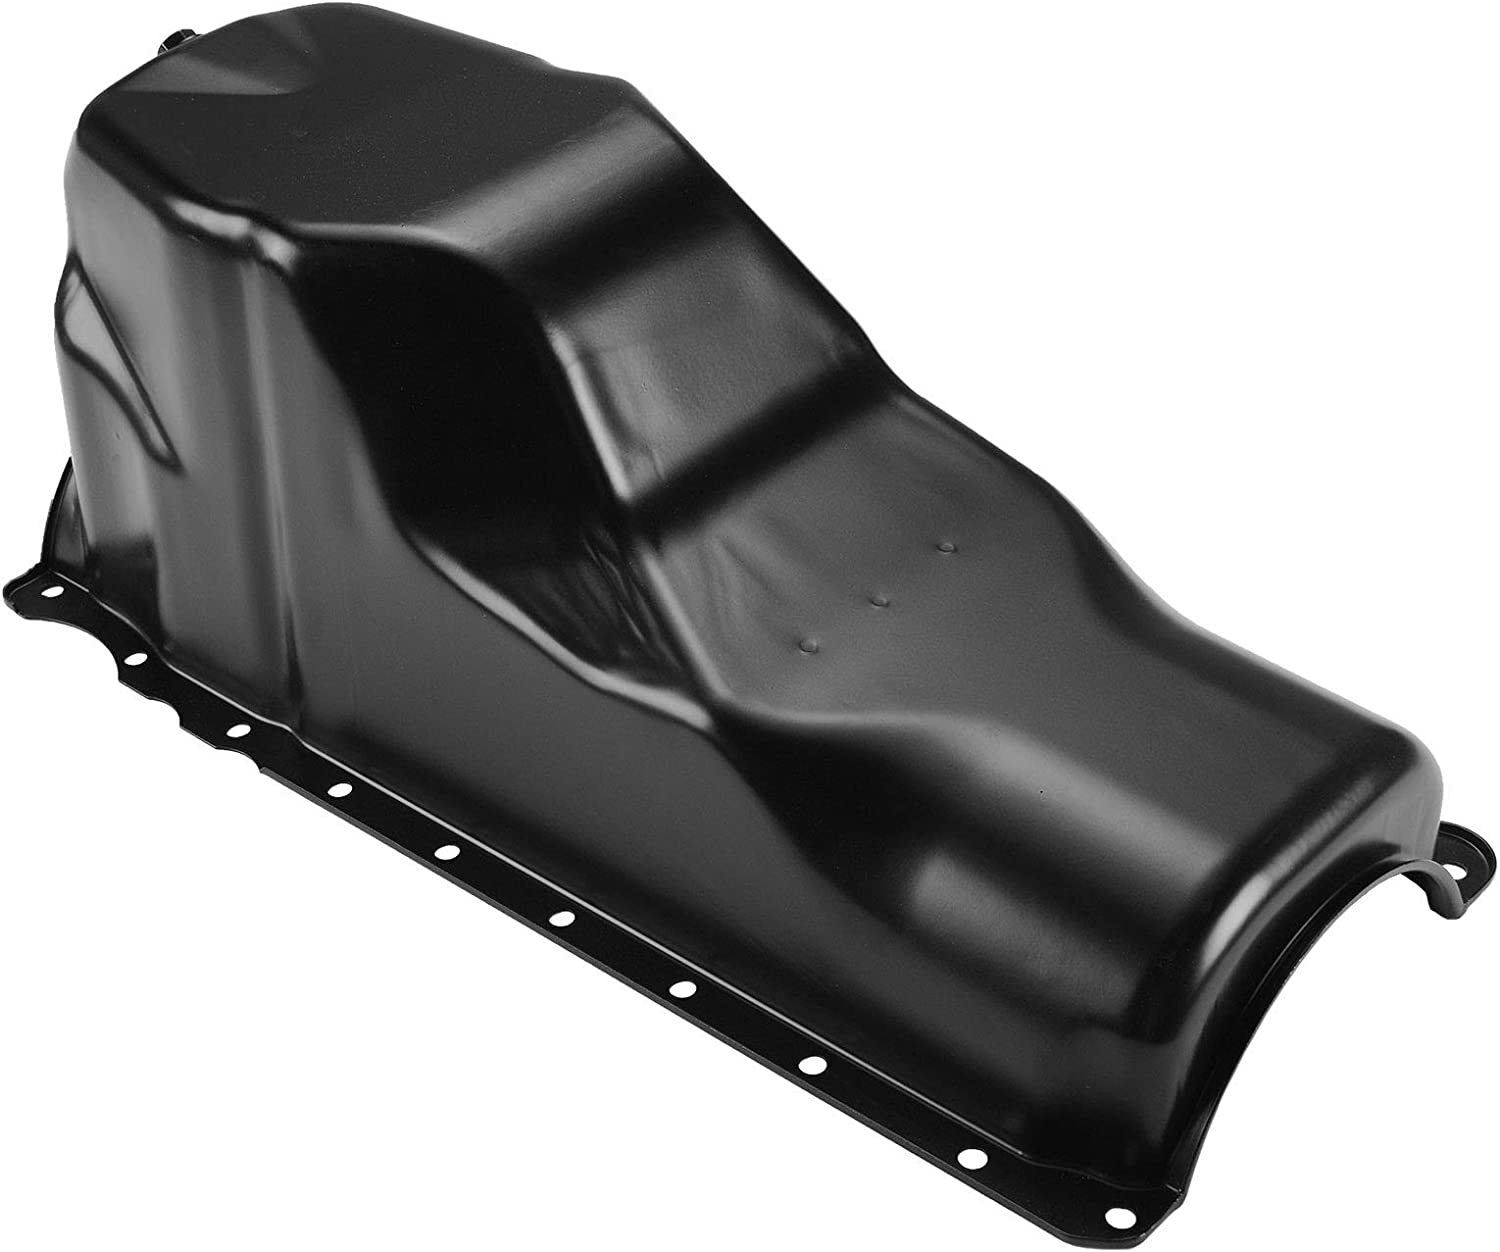 A-Premium Engine Oil Pan Compatible with Chevrolet C1500 C2500 C3500 G30 K2500 P30 GMC C2500 C3500 G3500 K2500 K3500 R3500 V8 7.4L